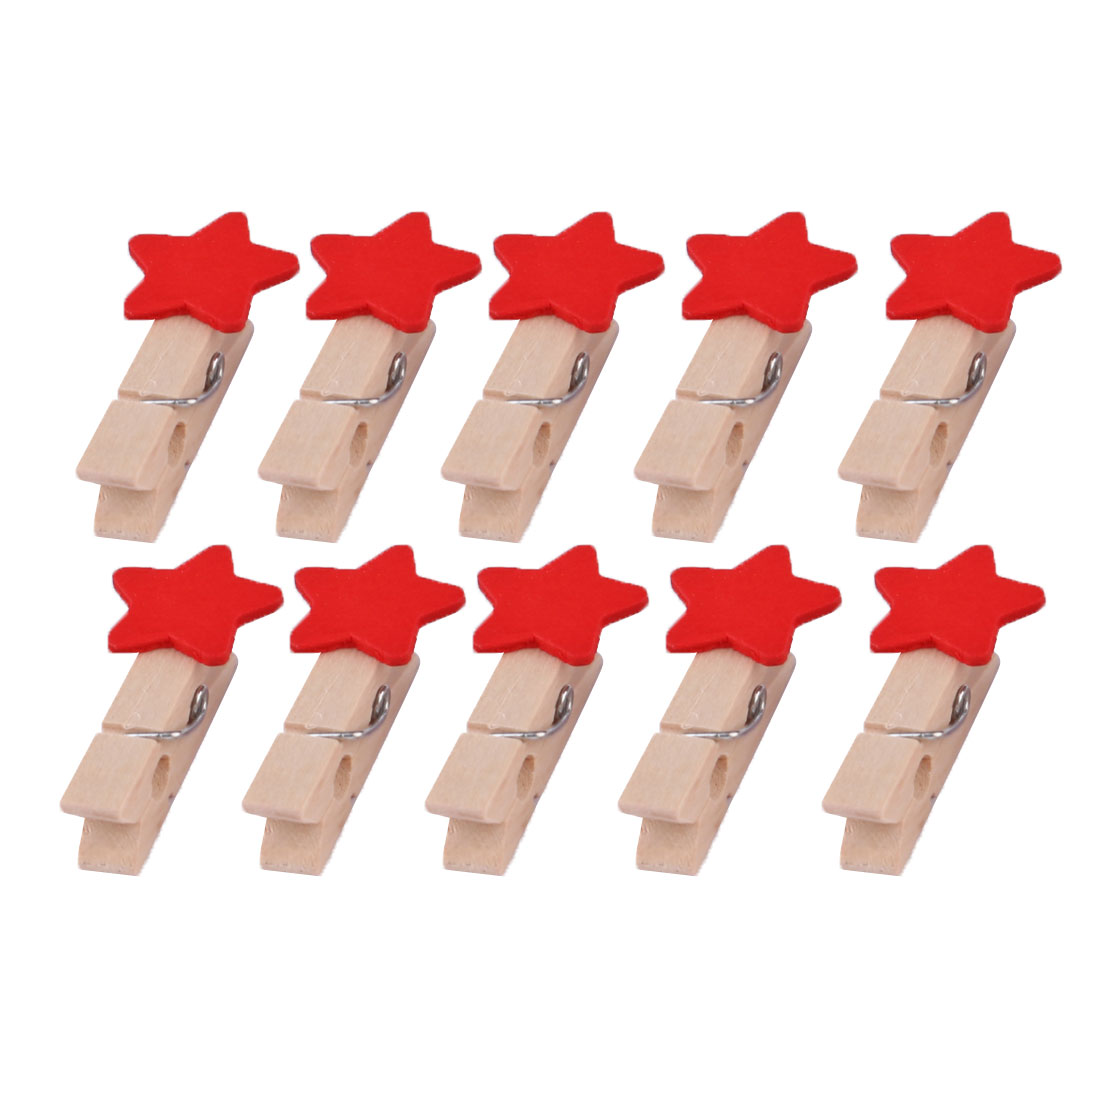 Home Wooden Star Shaped DIY Craft Photo Picture Post Card Decor Clip Red 10pcs